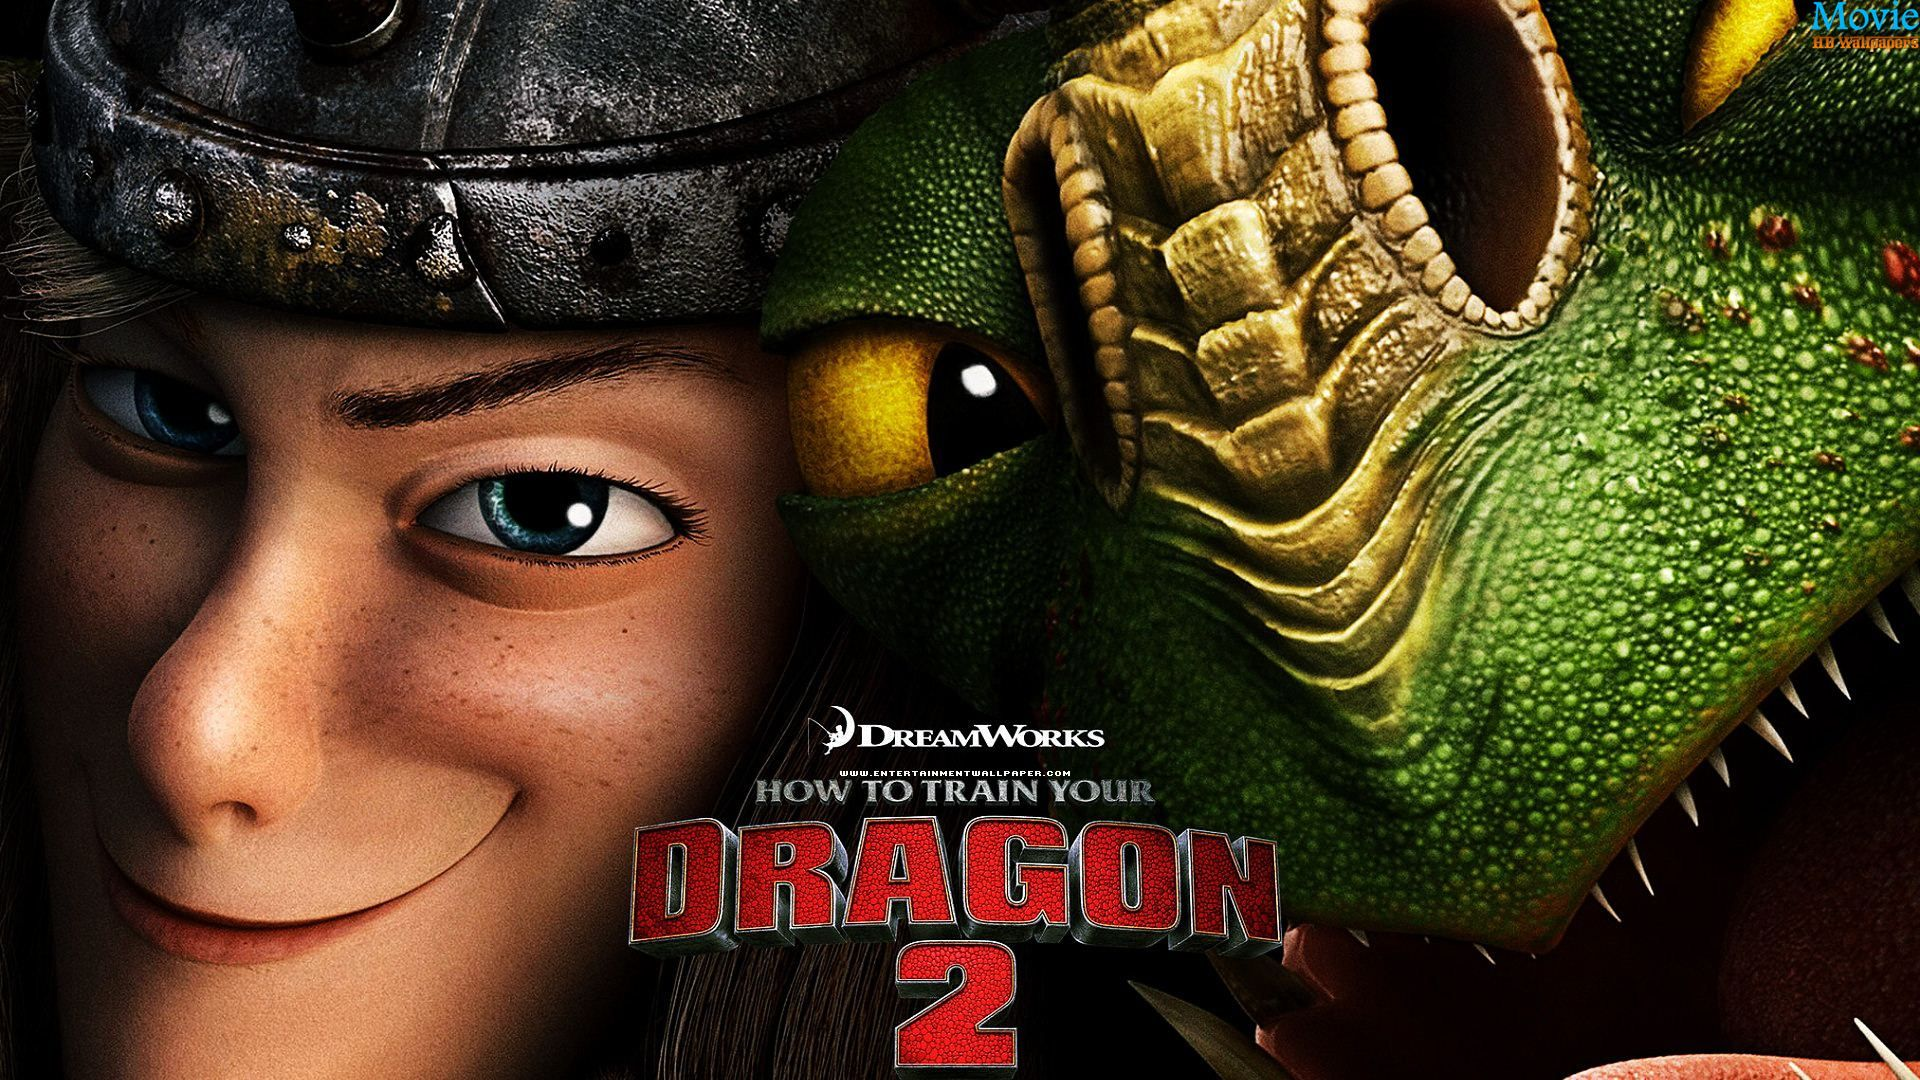 How To Train Your Dragon 2 Movie Hd Wallpapers